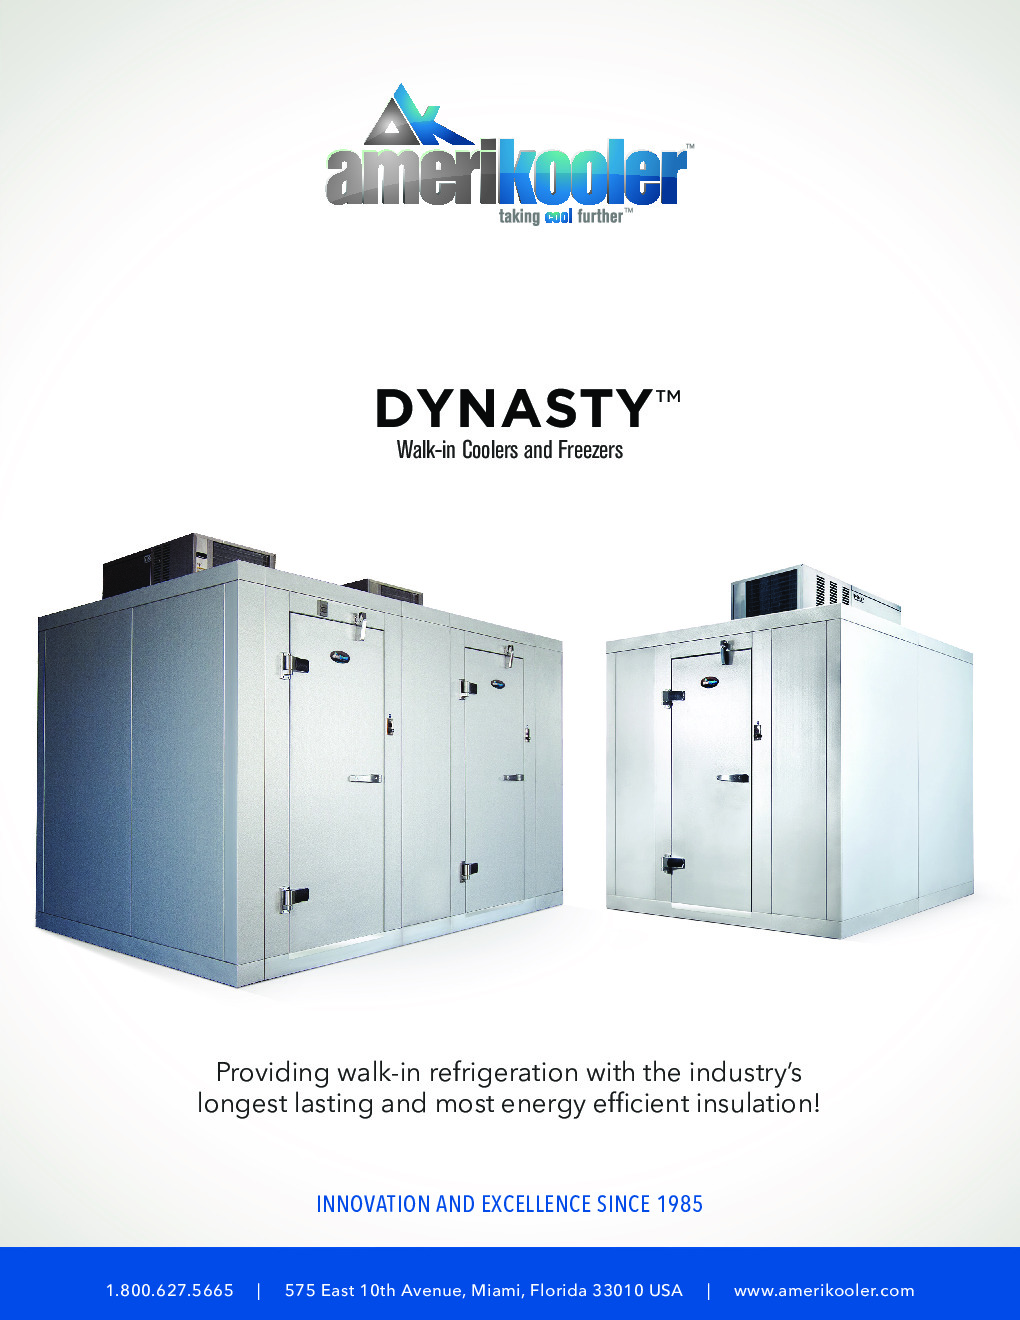 AmeriKooler DW101477N-6/8-RM 10' X 14' Walk-In Cooler, 8' L Cooler without Floor and 6' L Freezer, Remote